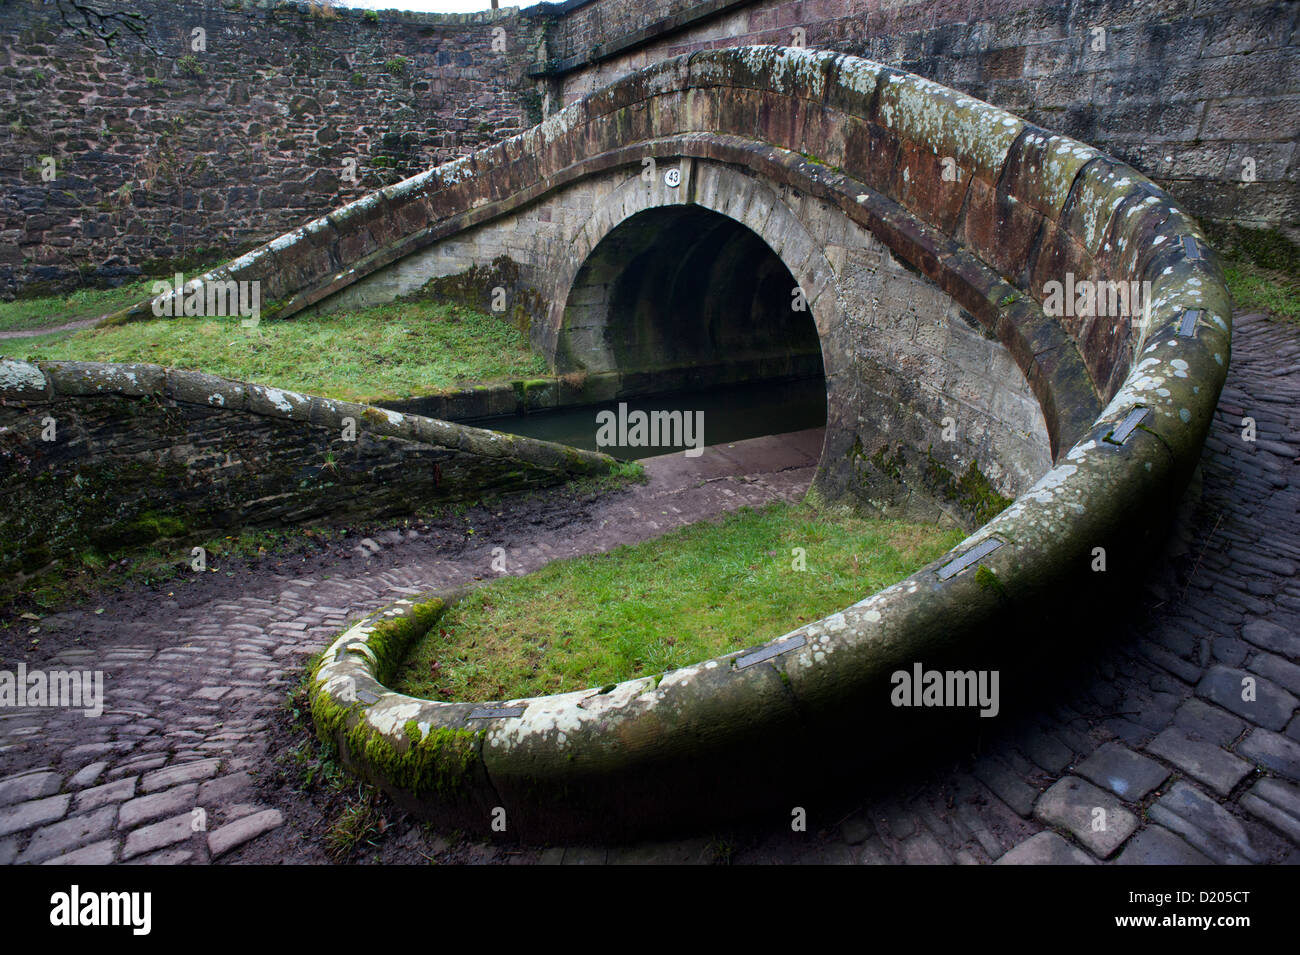 Macclesfield, Cheshire. Snake bridge carrying the towpath over the Macclesfield Canal, near the town. Stock Photo